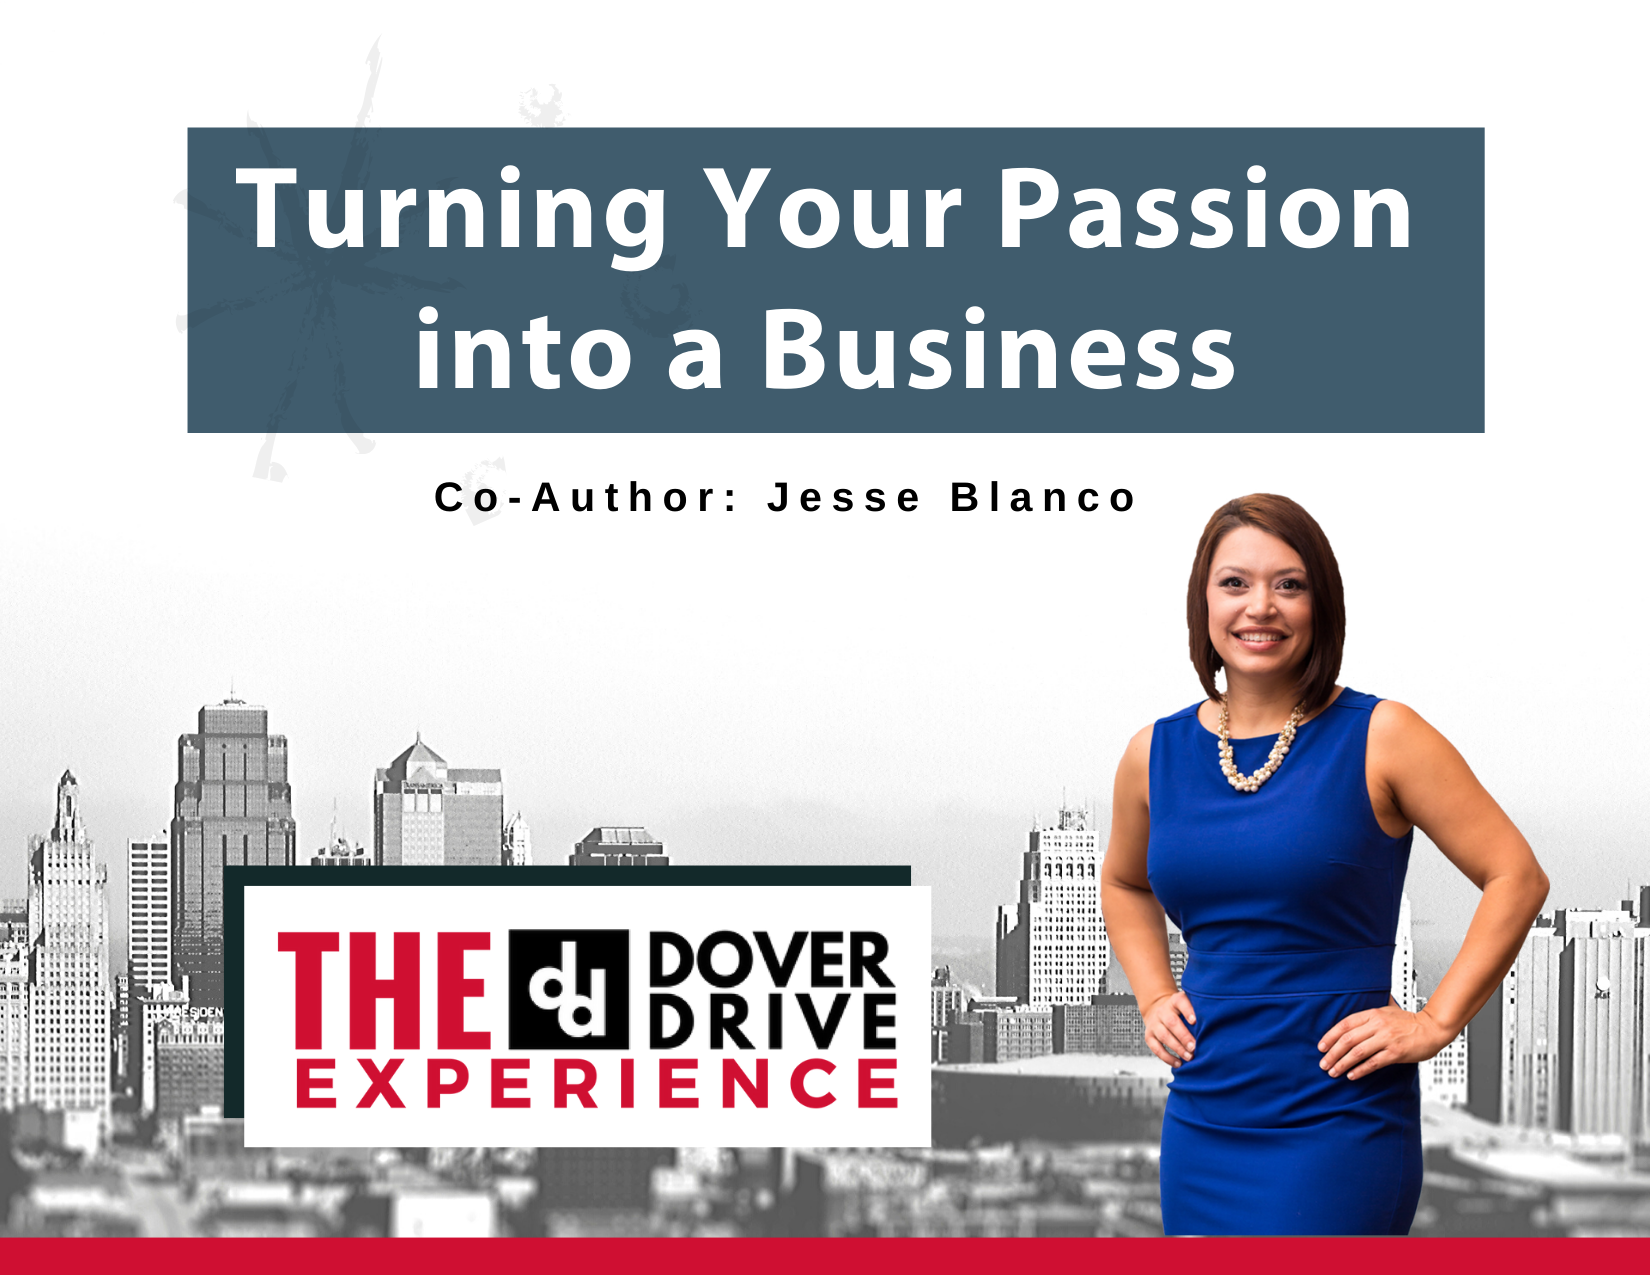 Turning Your Passion into a Business DoverDrive Experience